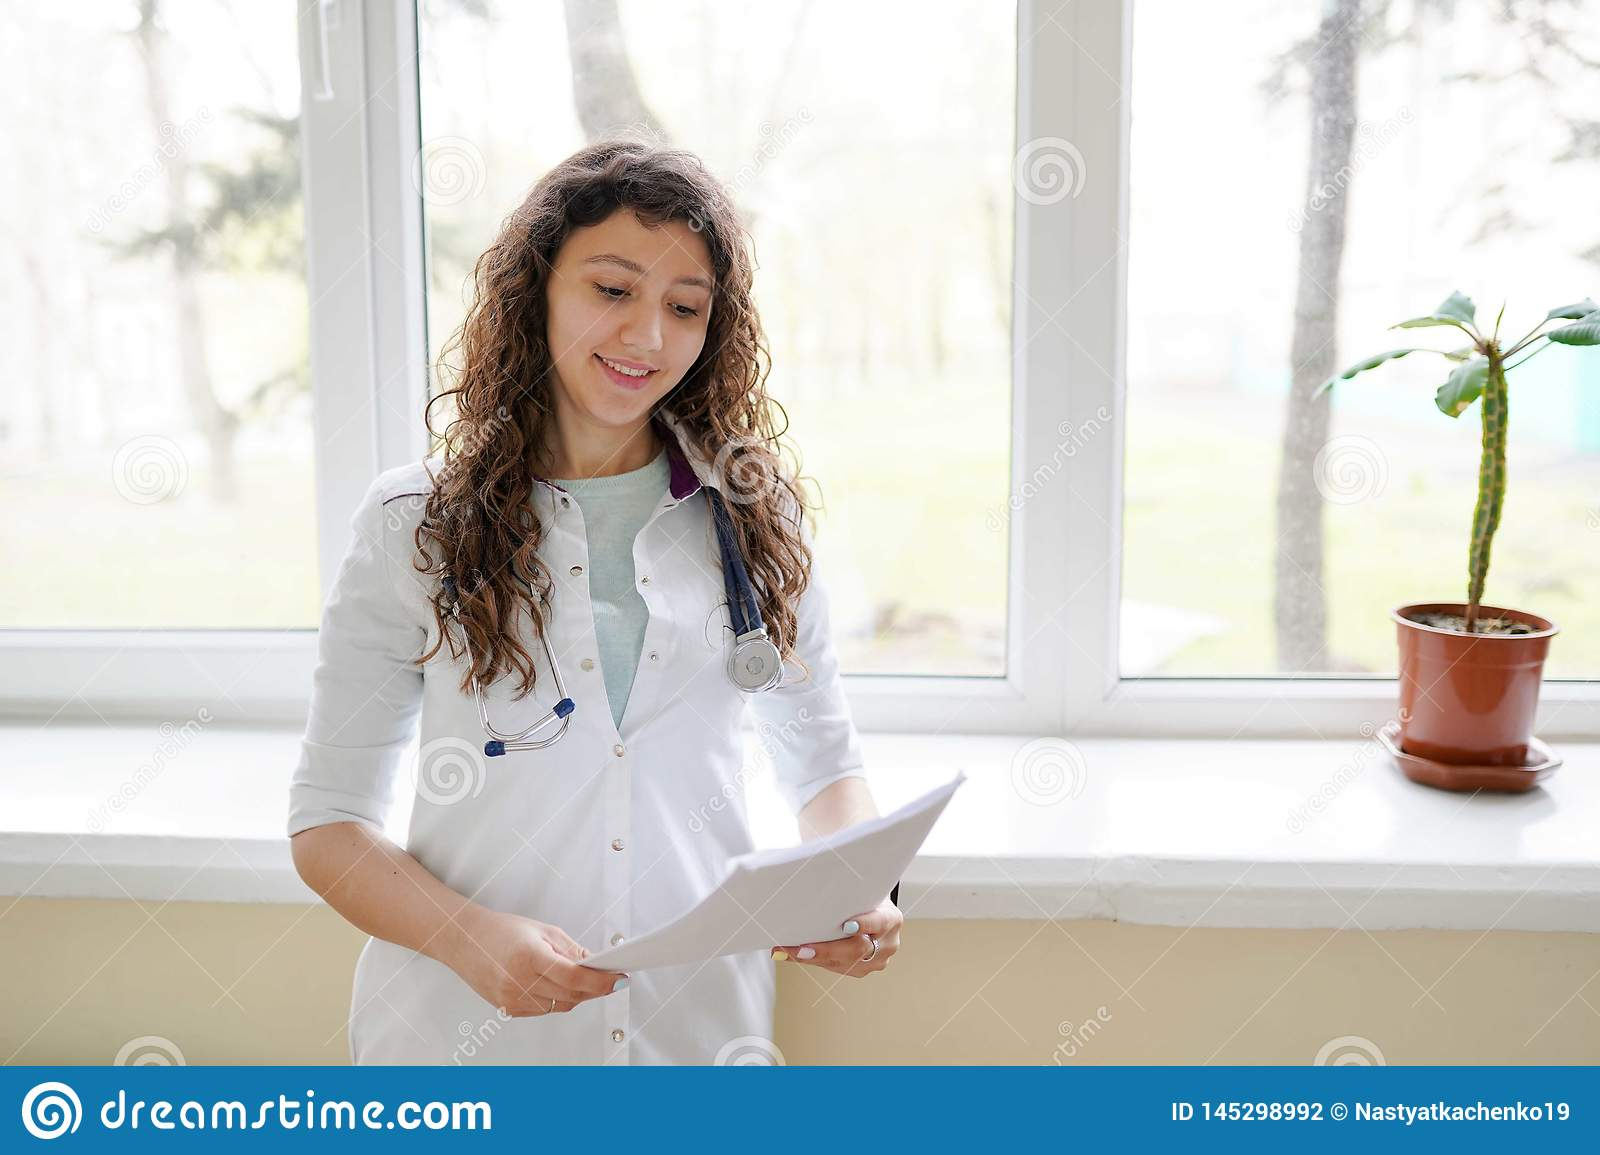 Woman doctor working at the hospital office. Medical healthcare and doctor staff service